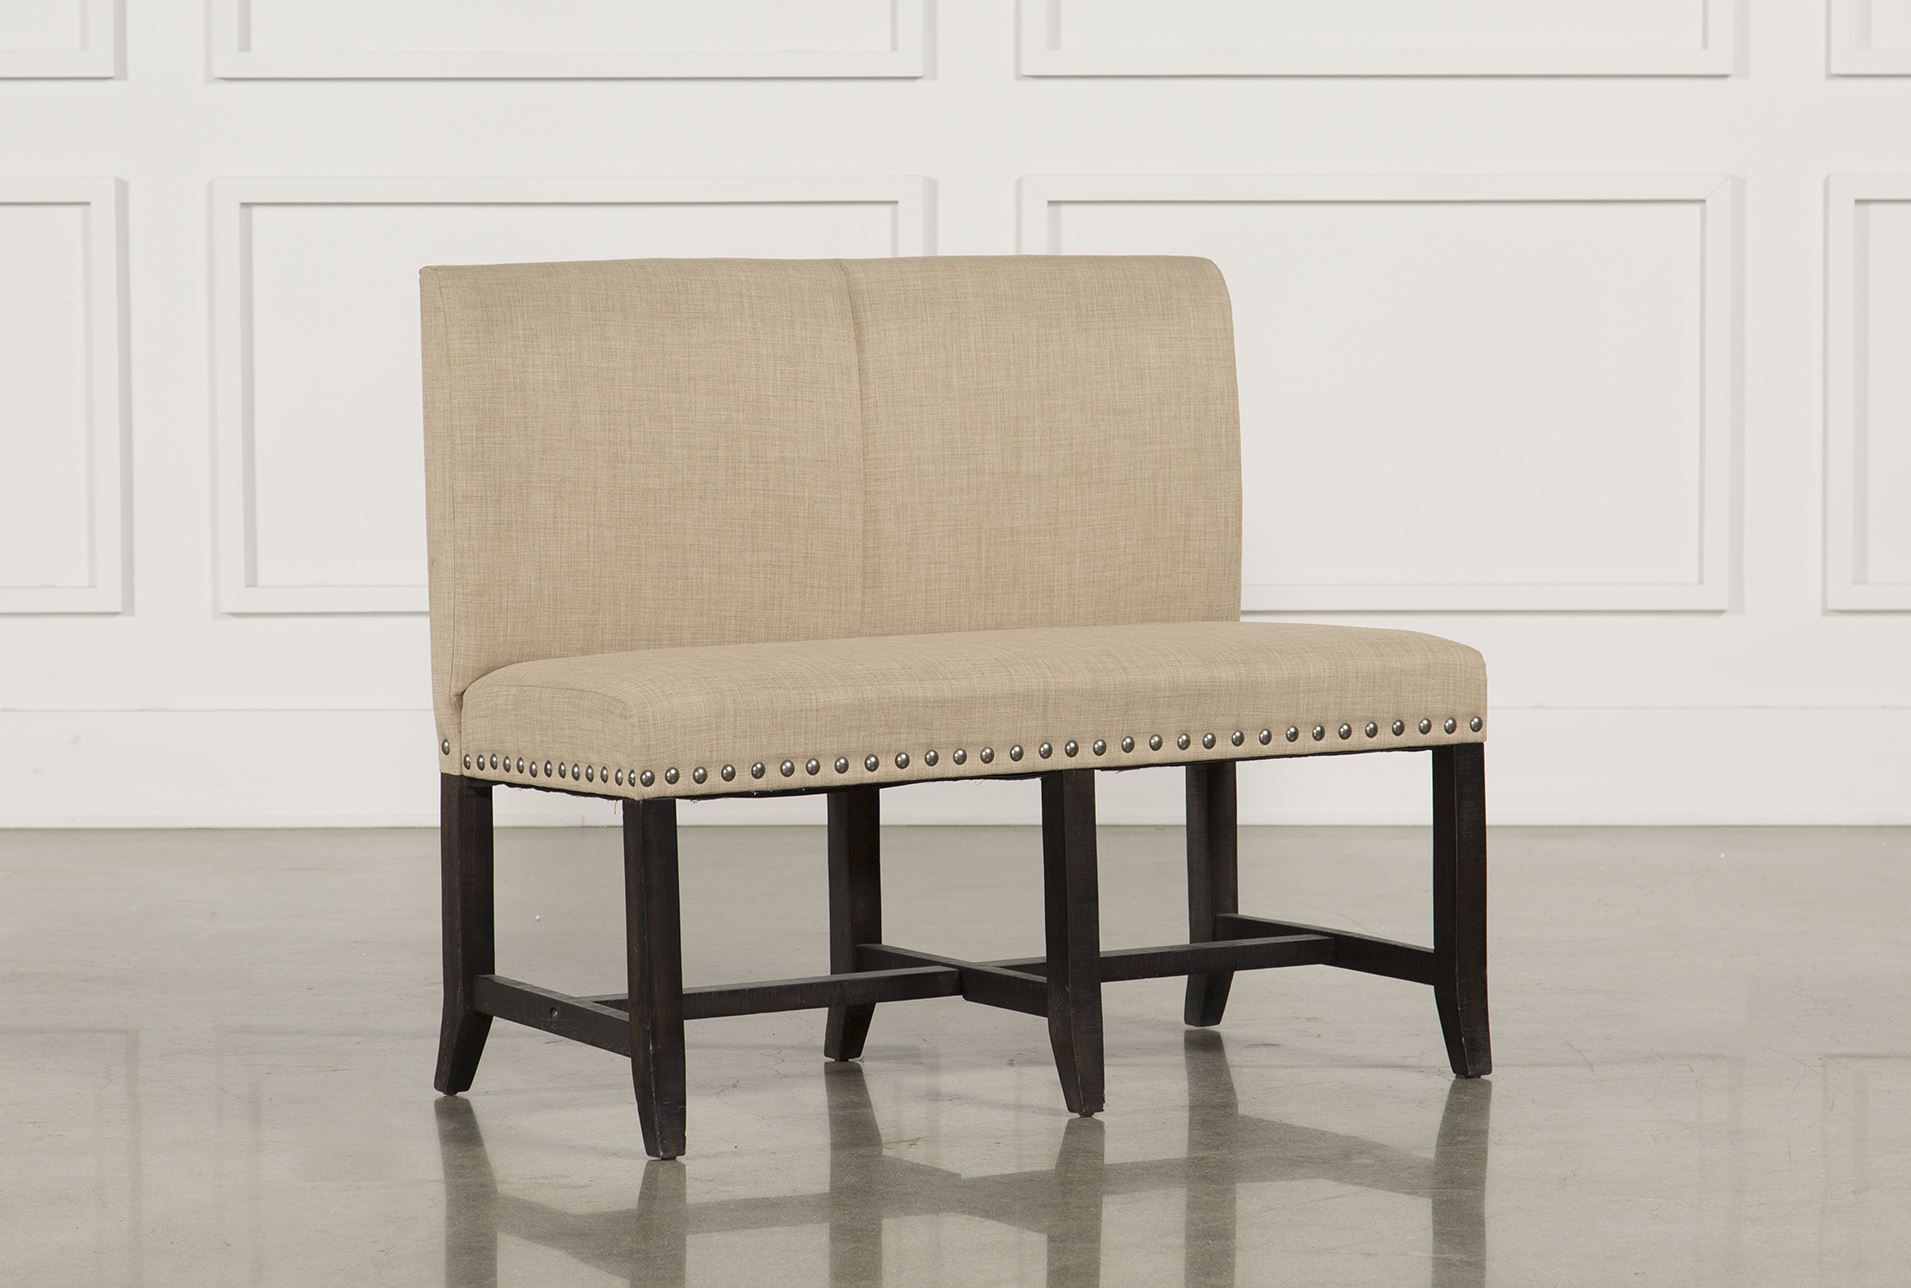 Jaxon Upholstered Highback Bench Living Spaces And Simple Dining Room With Back Inspiration Design